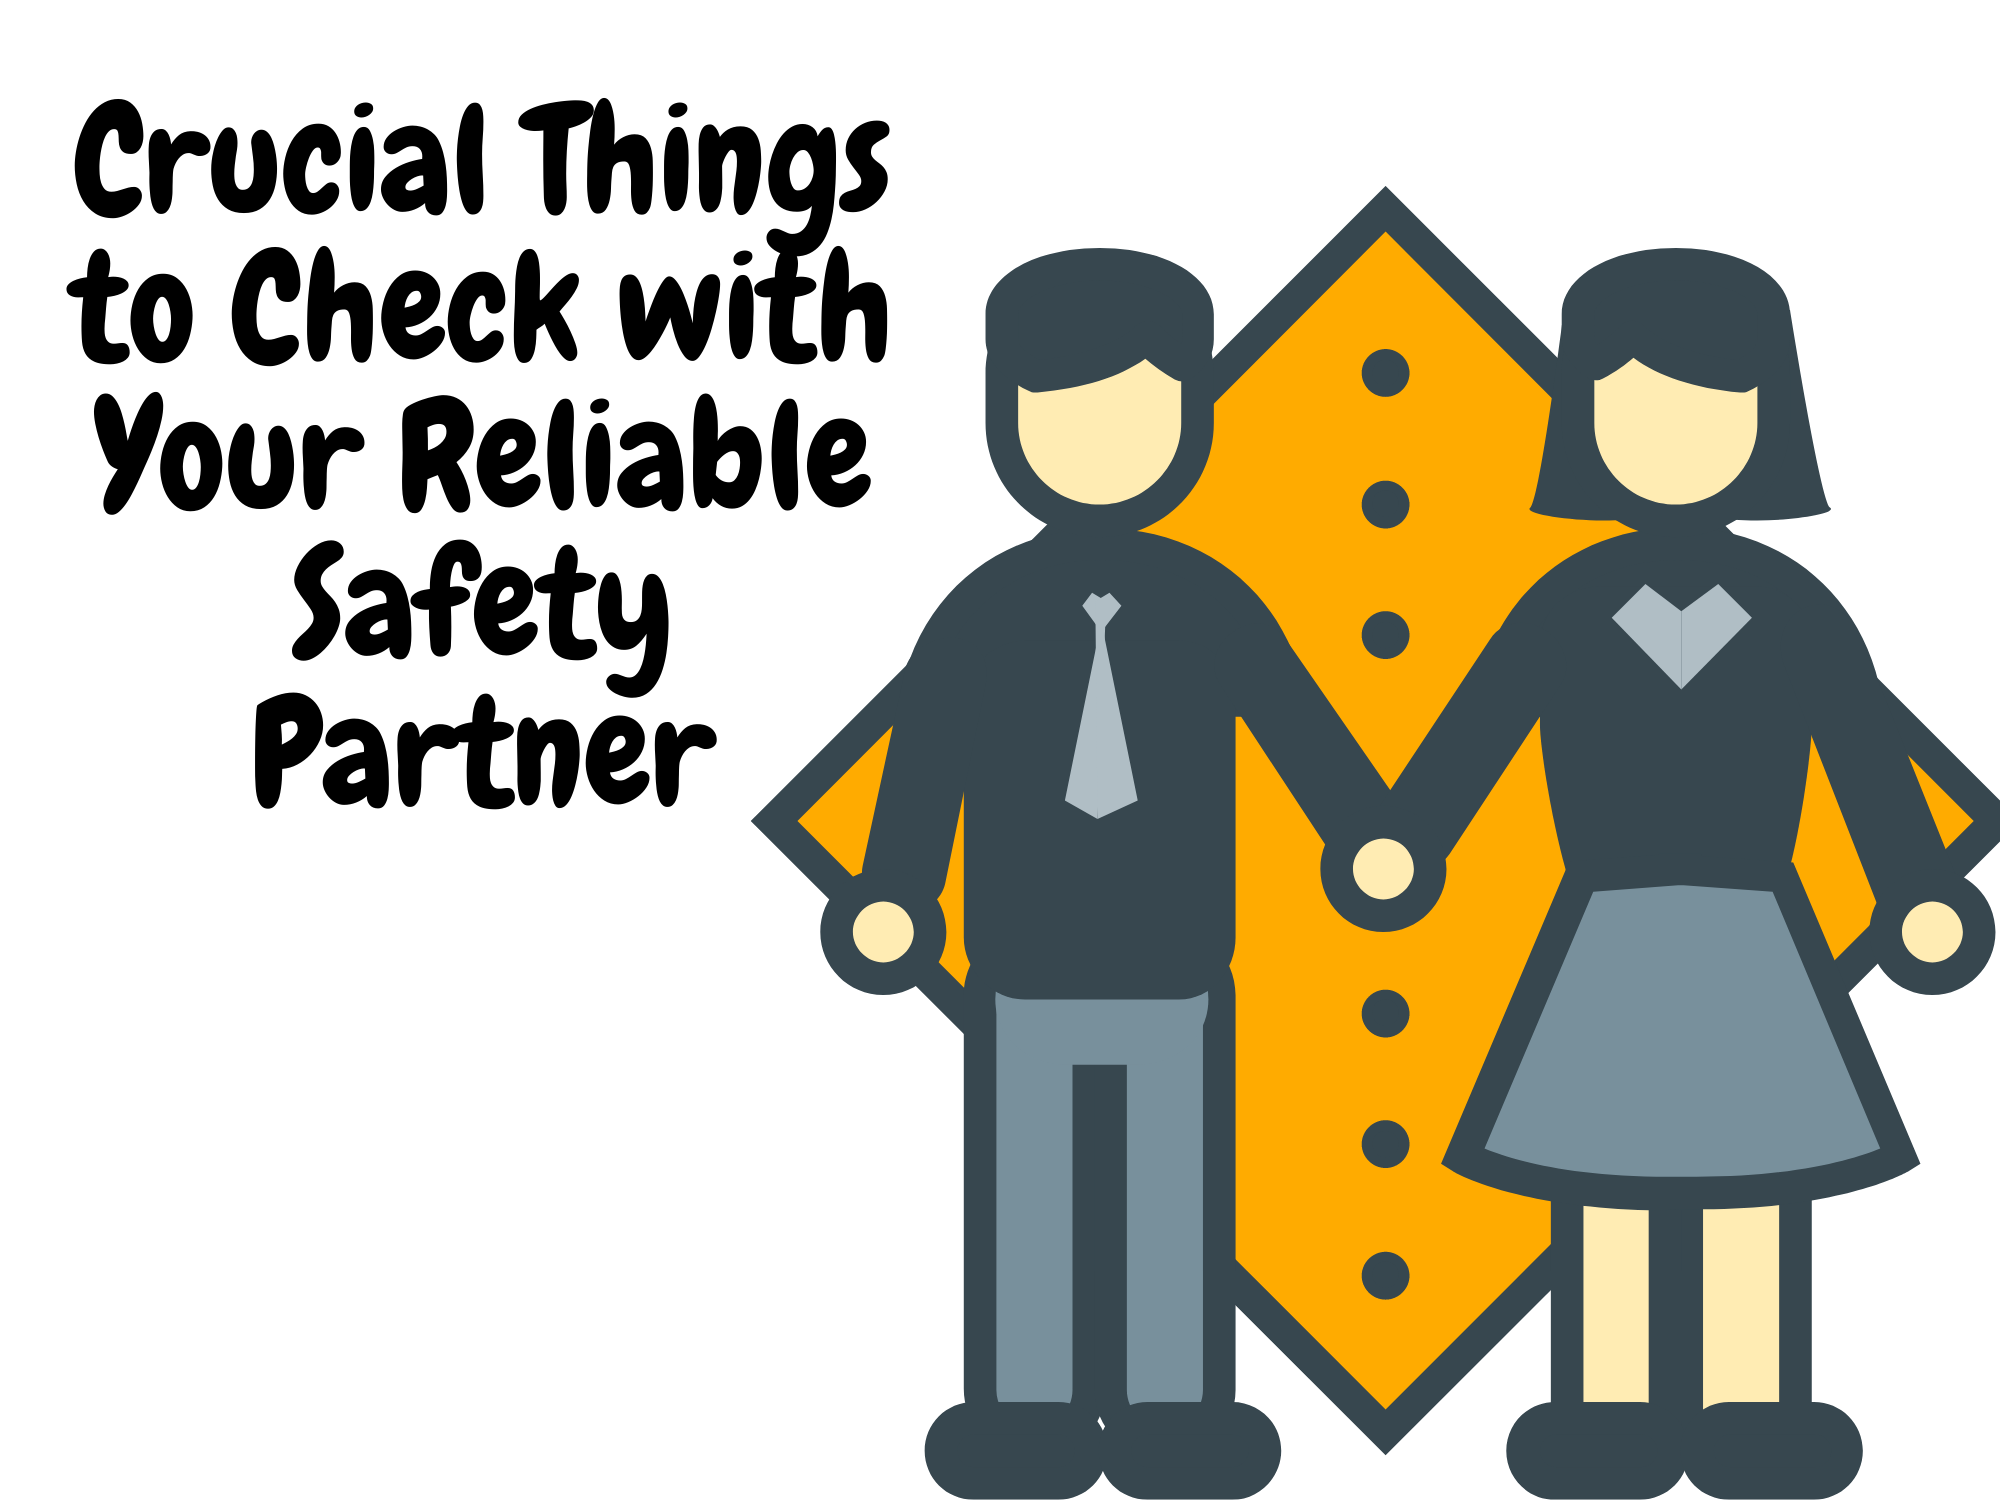 Crucial-Things-to-Check-with-Your-Reliable-Safety-Partner